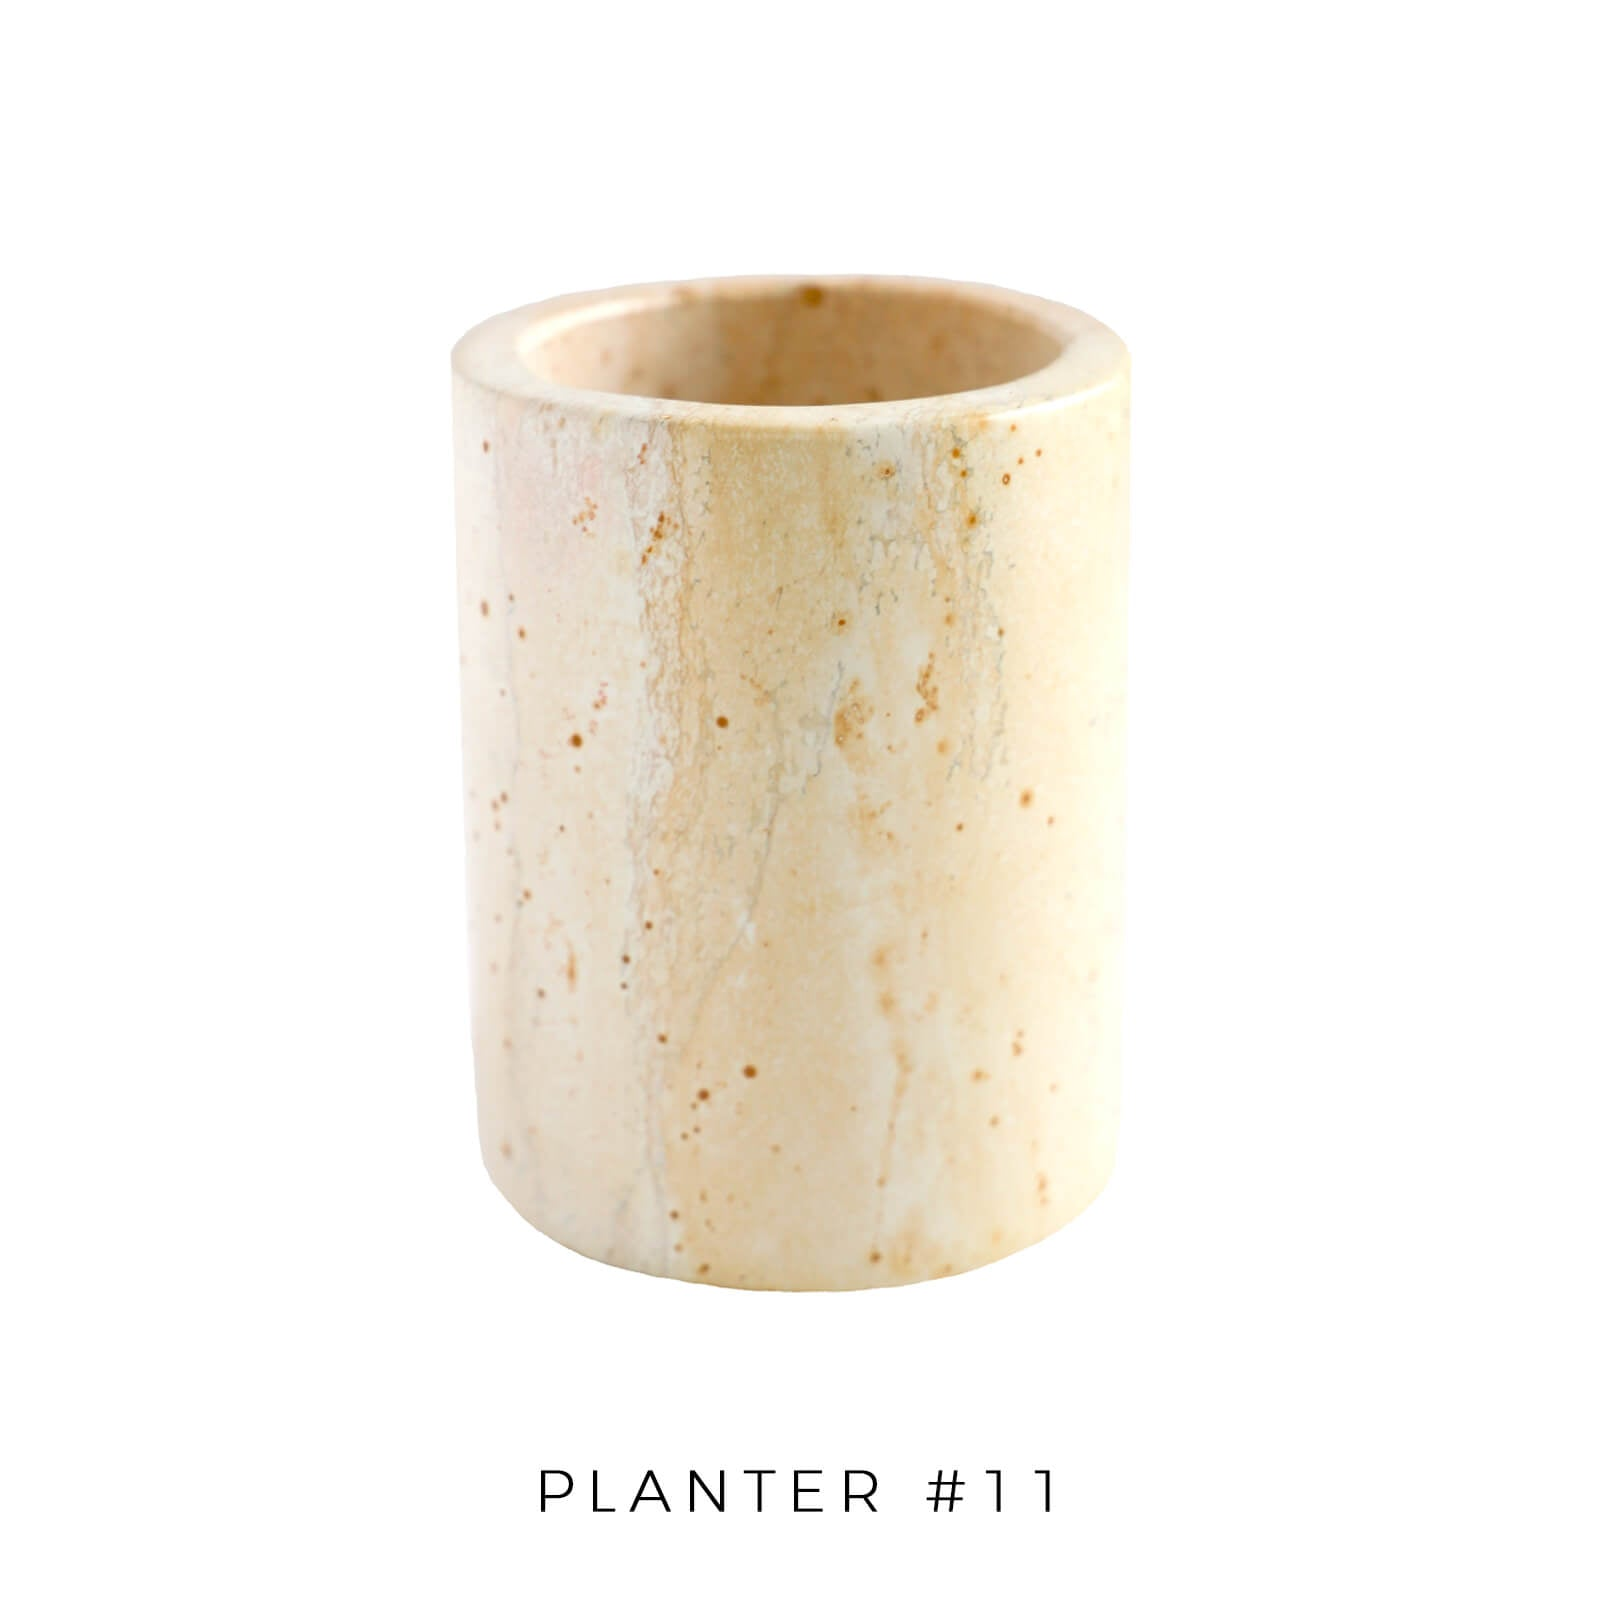 Soapstone Cylinder Planter - Medium